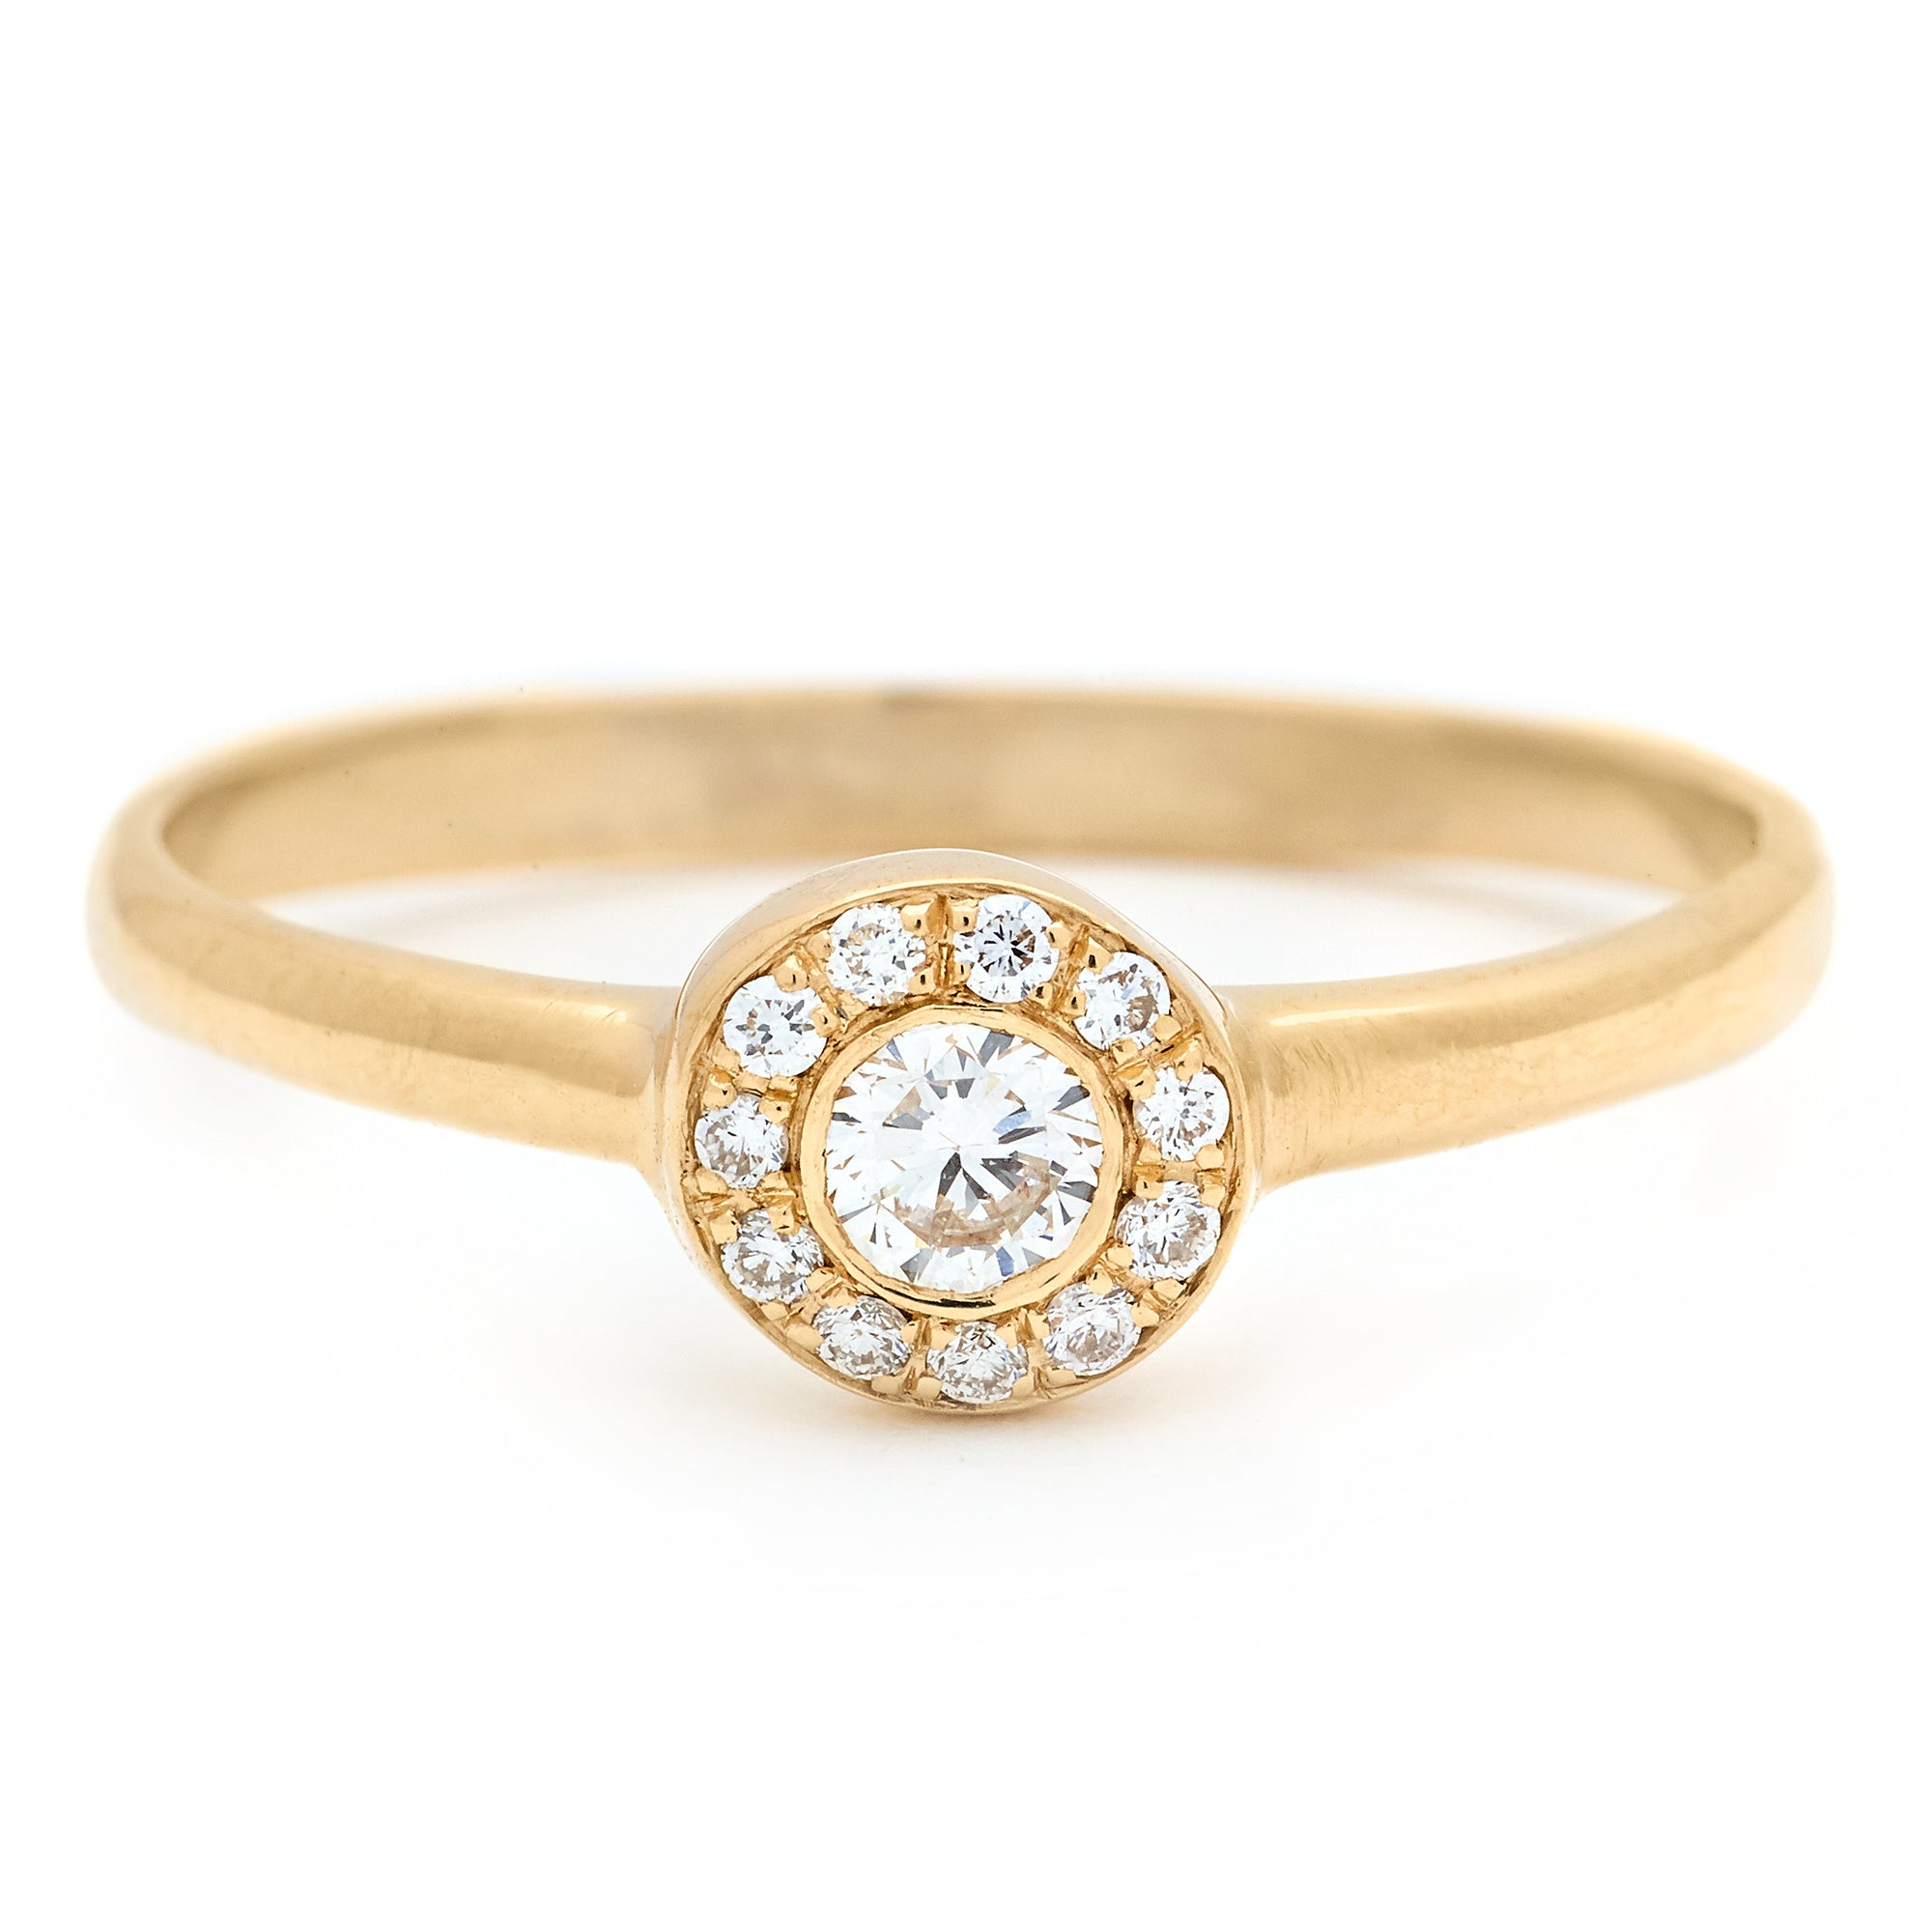 Quil Solitaire Gold Diamond Ring - Johanna Brierley Jewellery Design